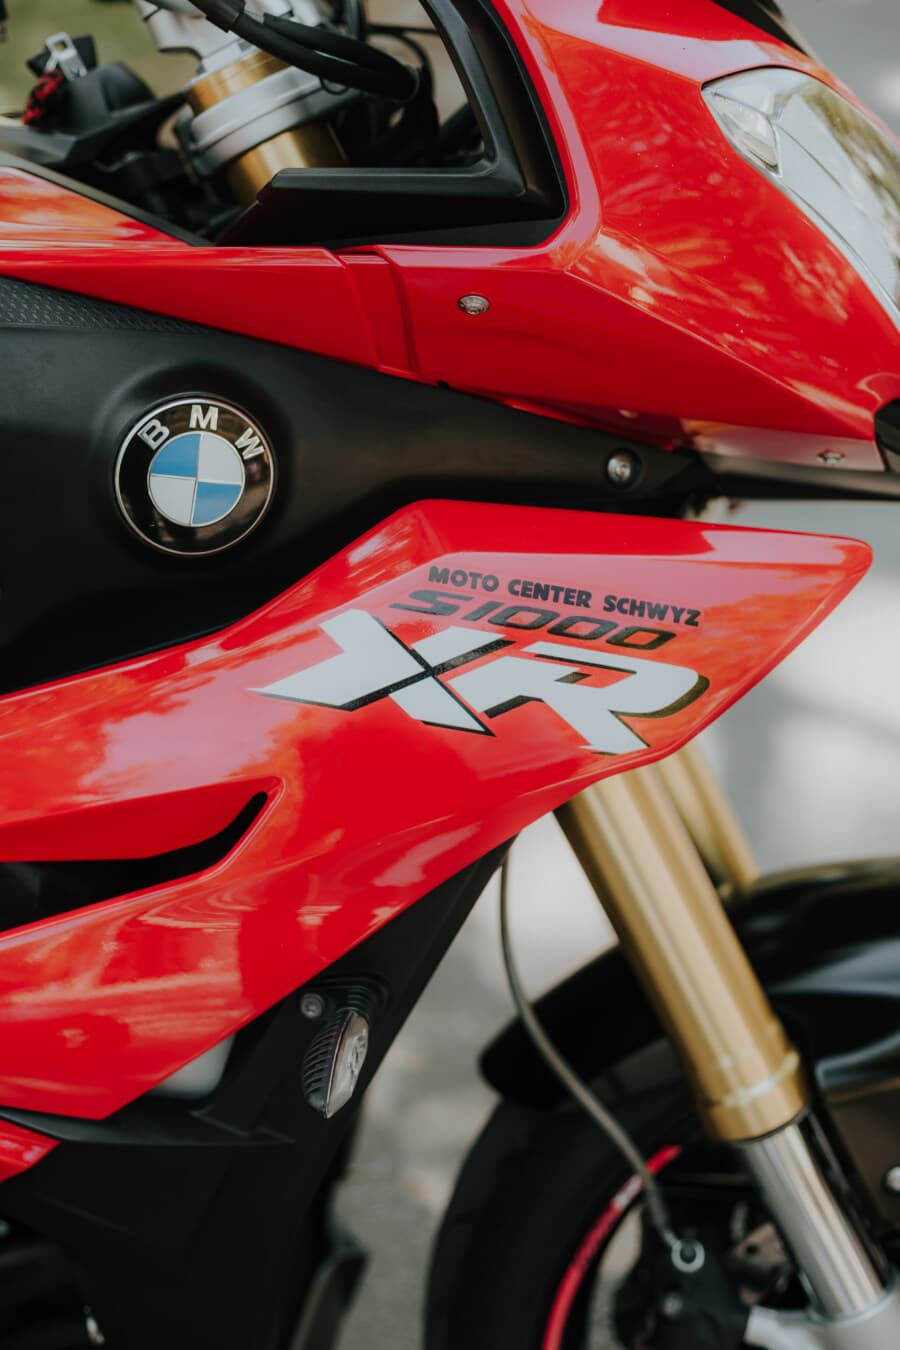 BMW, motorbike, motorcycle, close-up, modern, expensive, red, paint, glossy, race